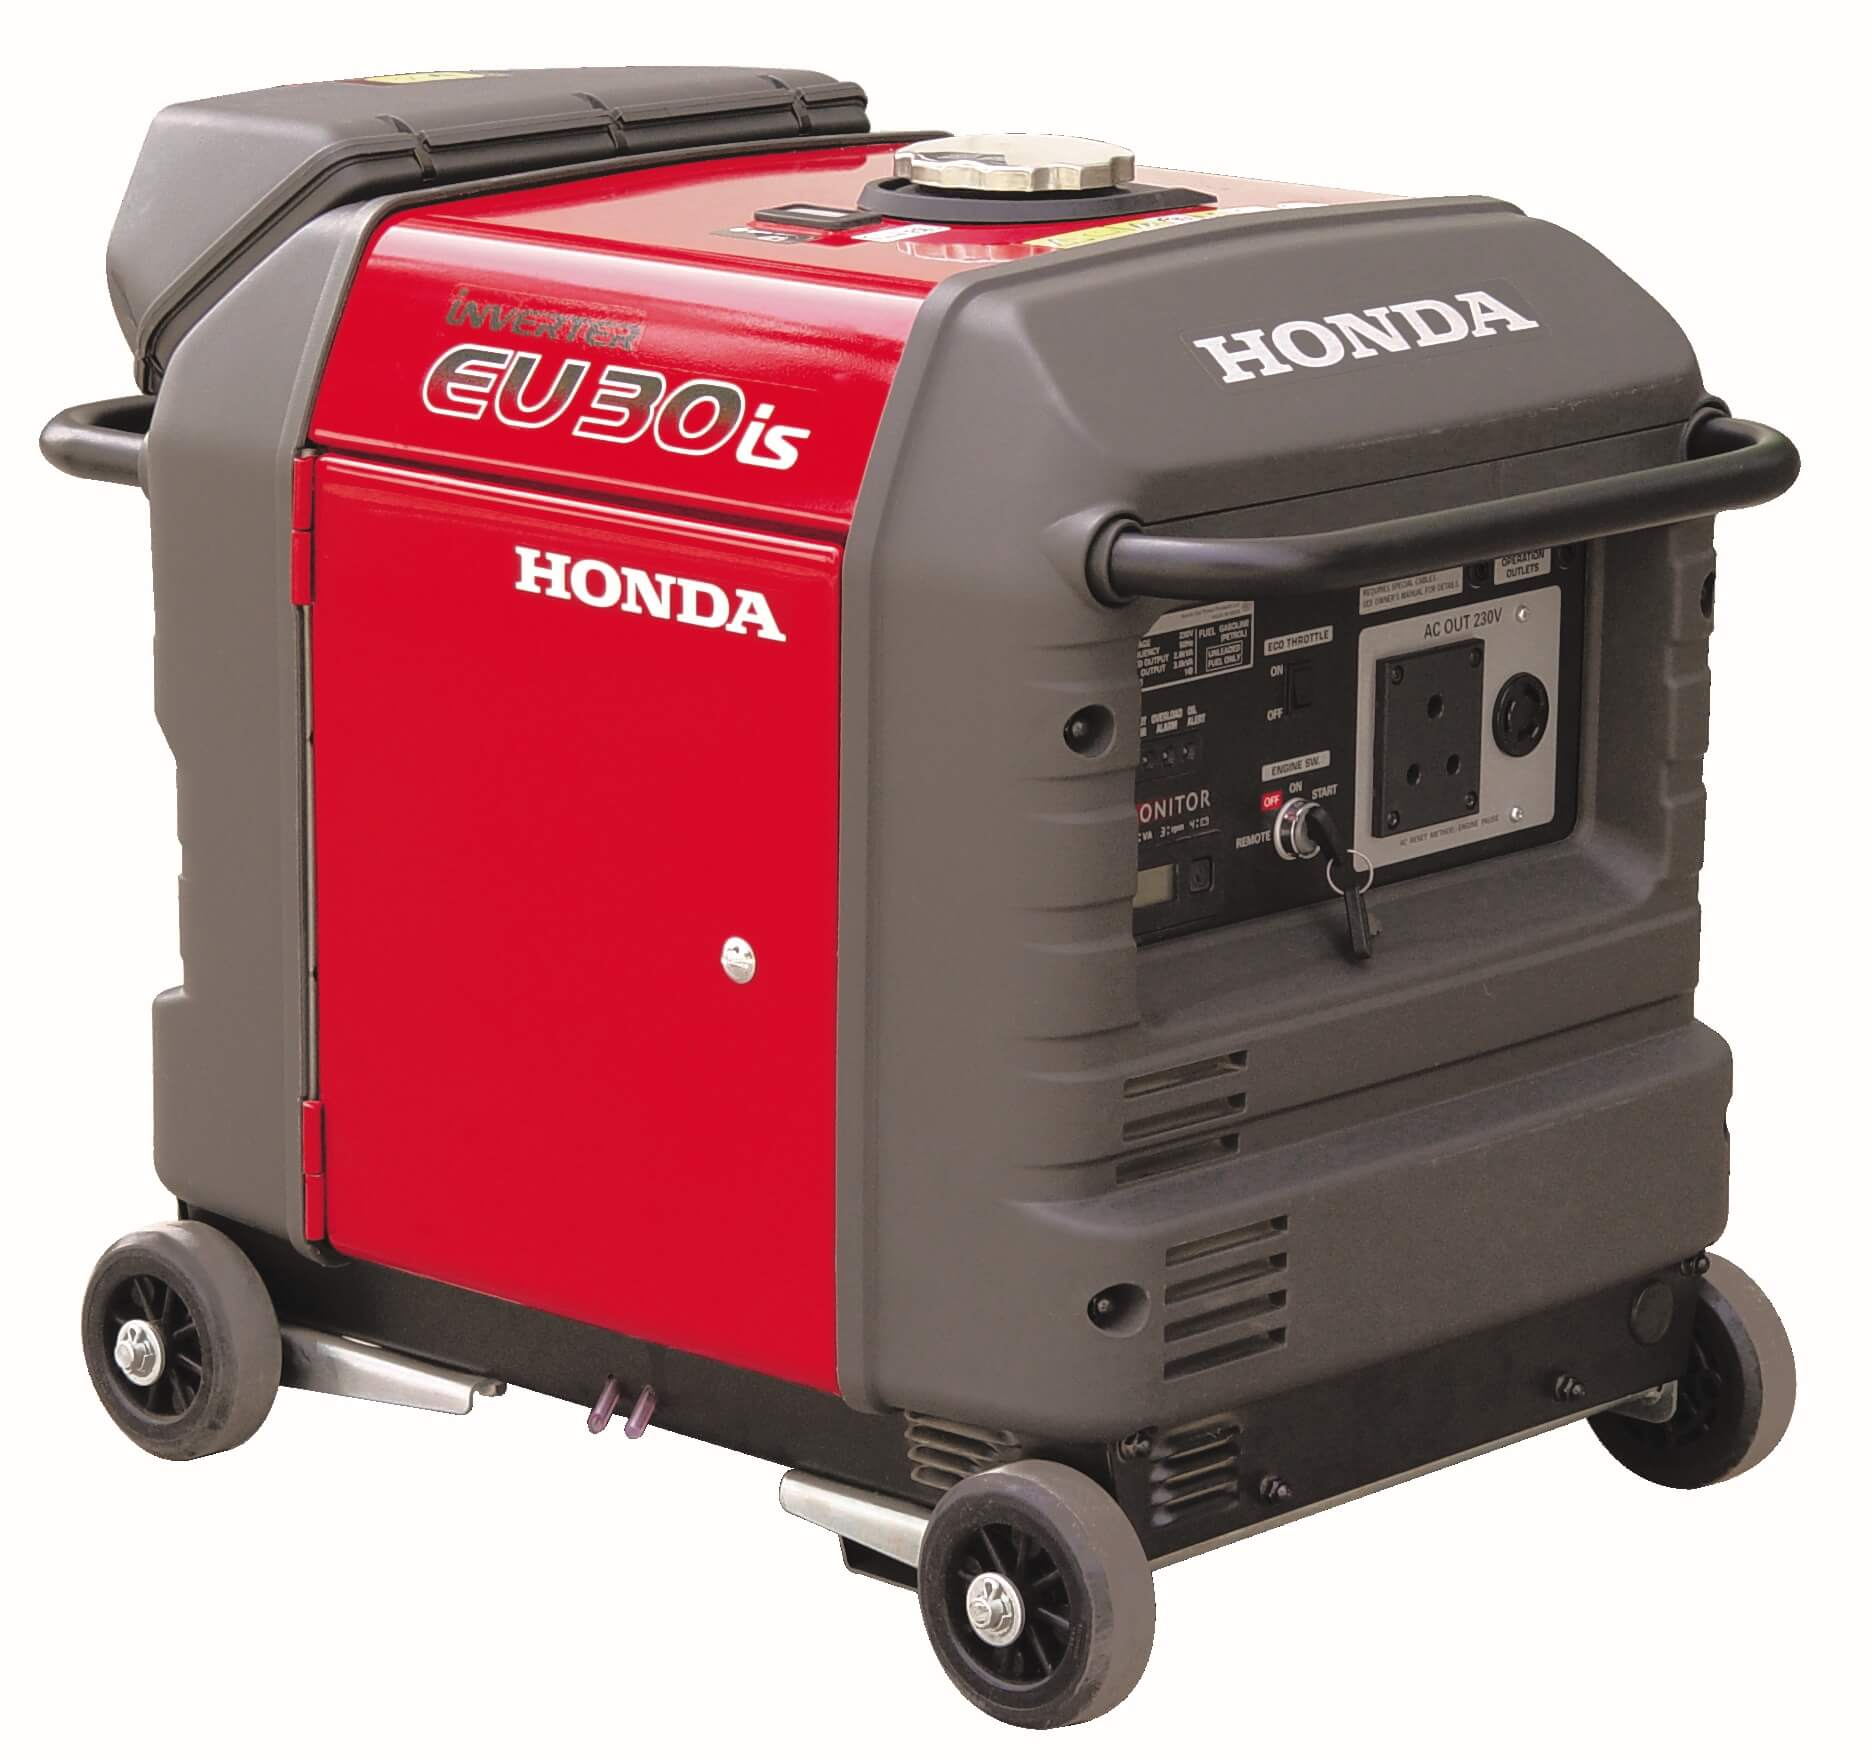 Honda Portable Inverter Generator EU30is Industrial Equipment Centre Ranigunj Secunderabad